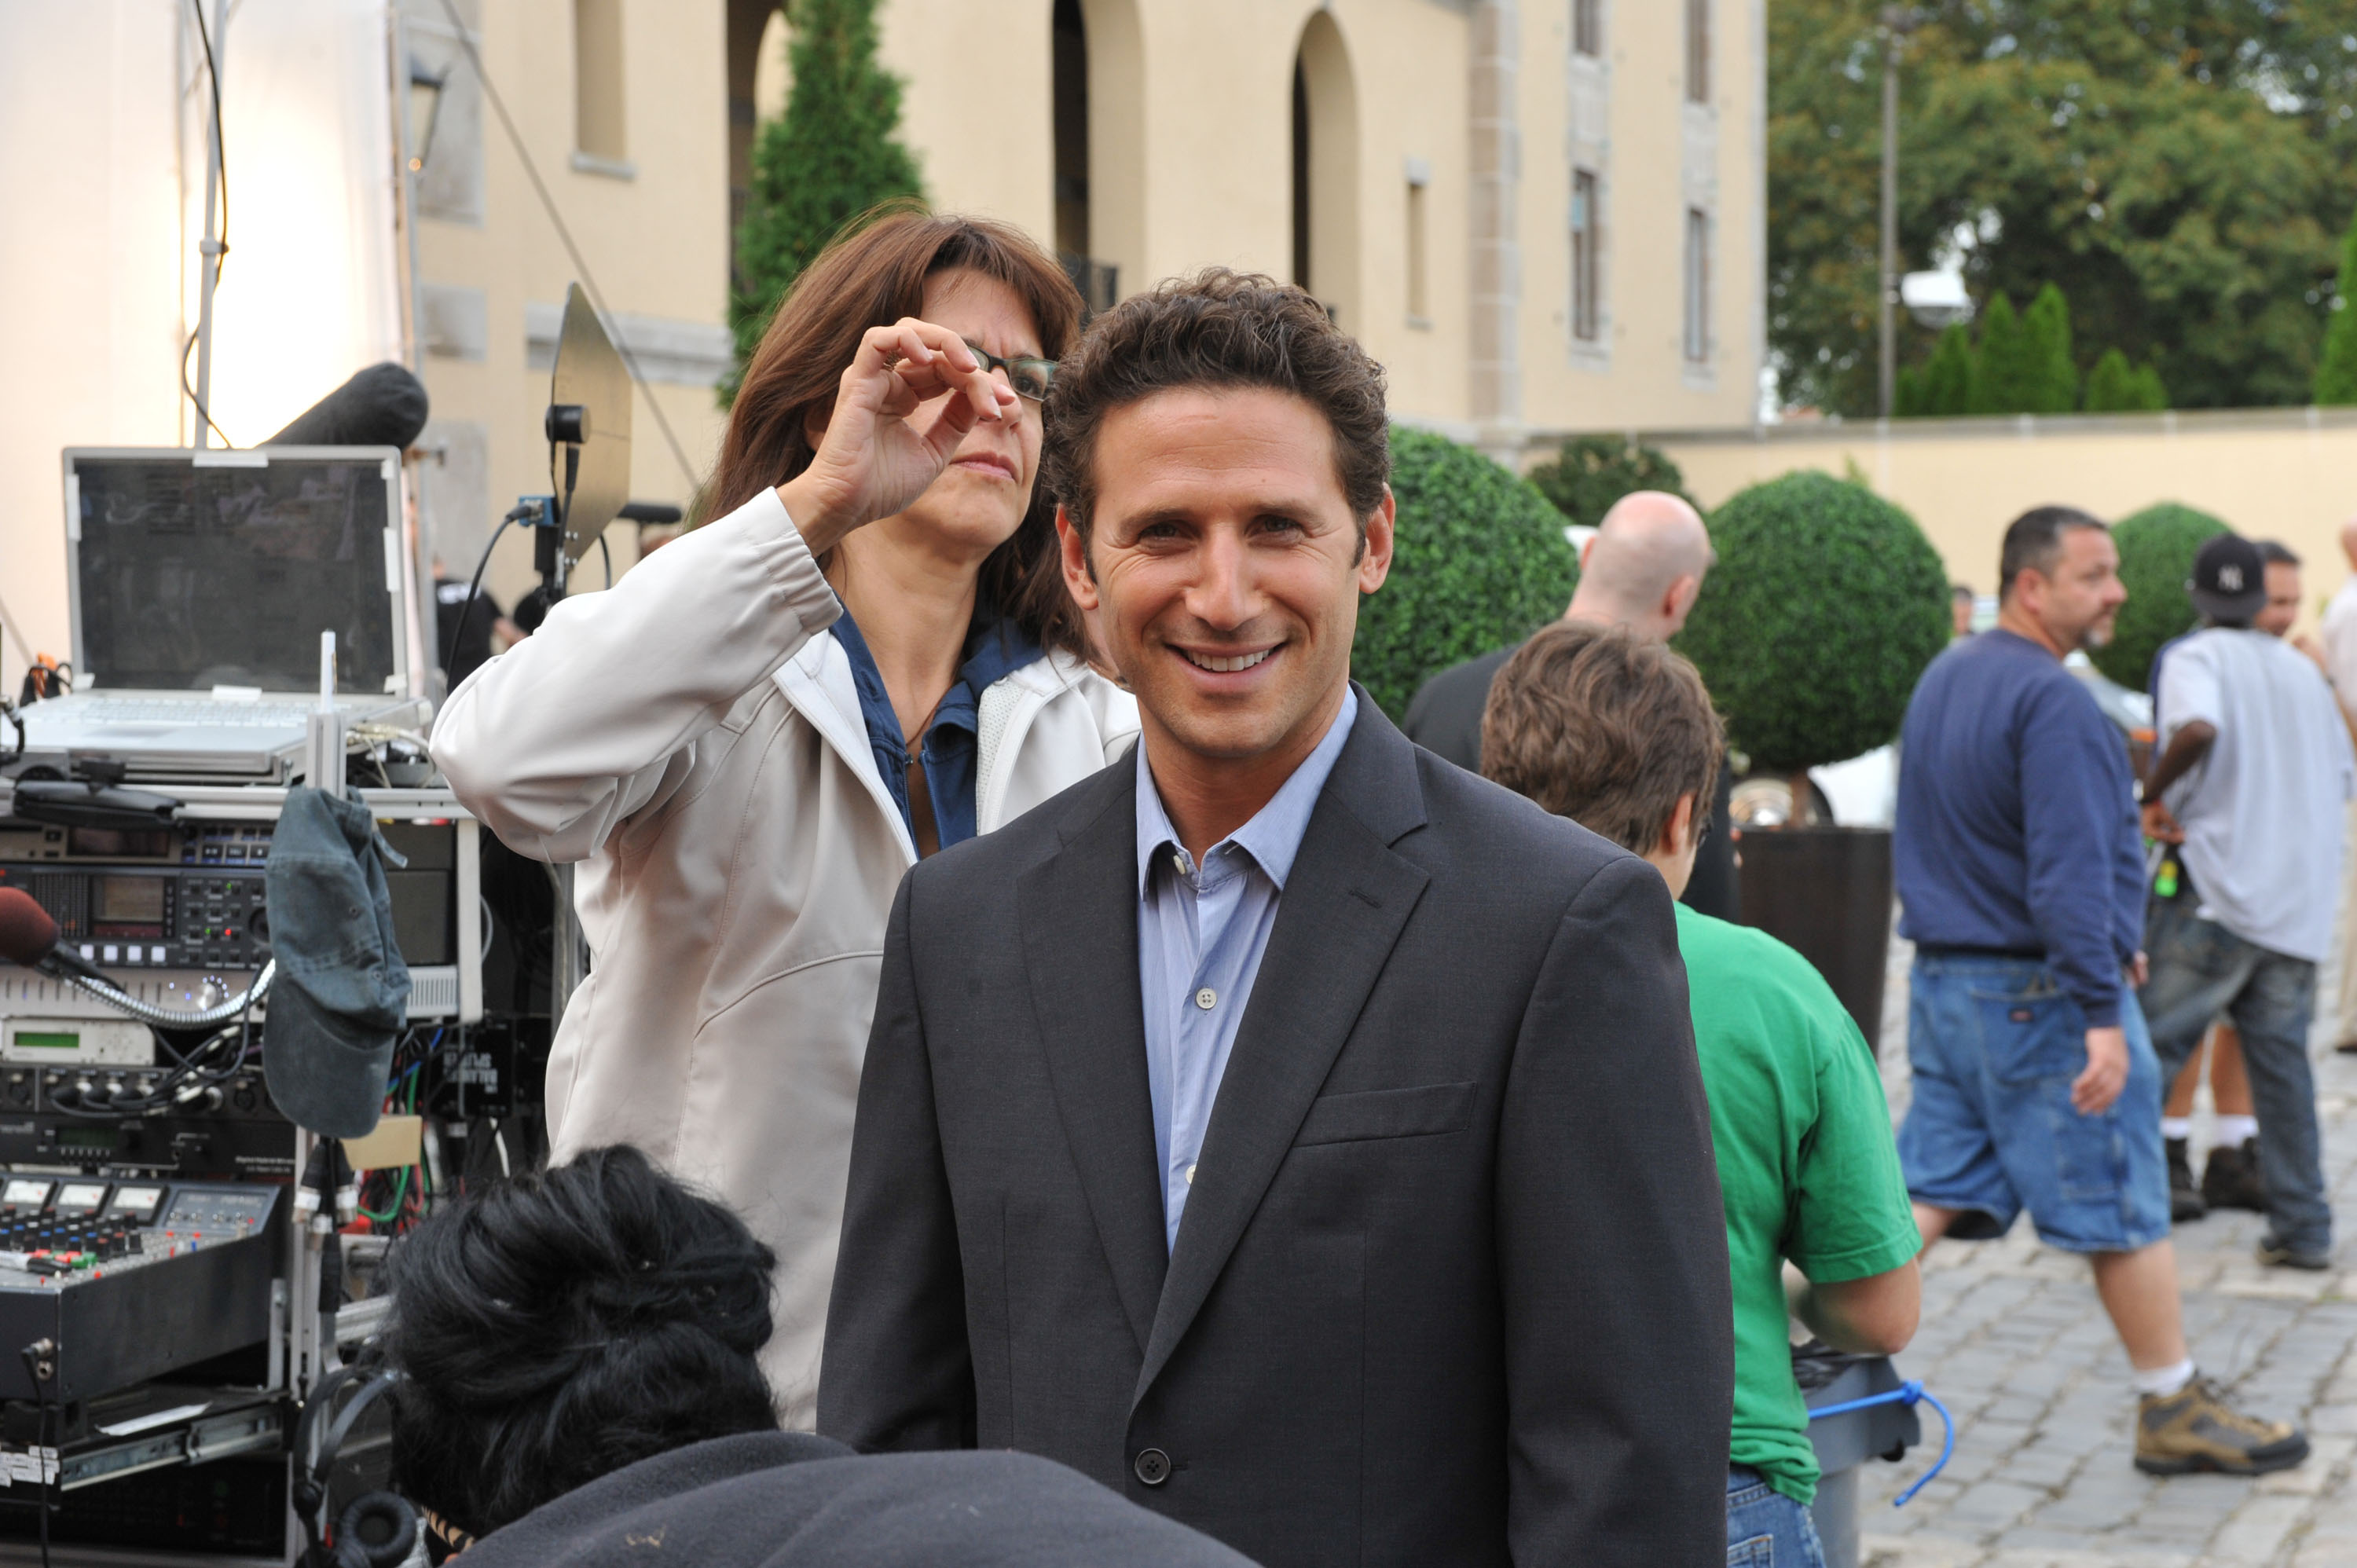 Image #: 11475148    Mark Feuerstein on the set of USA network's 'Royal Pains' filming on L.I. at Oheka Castle.   MAXA /Lando